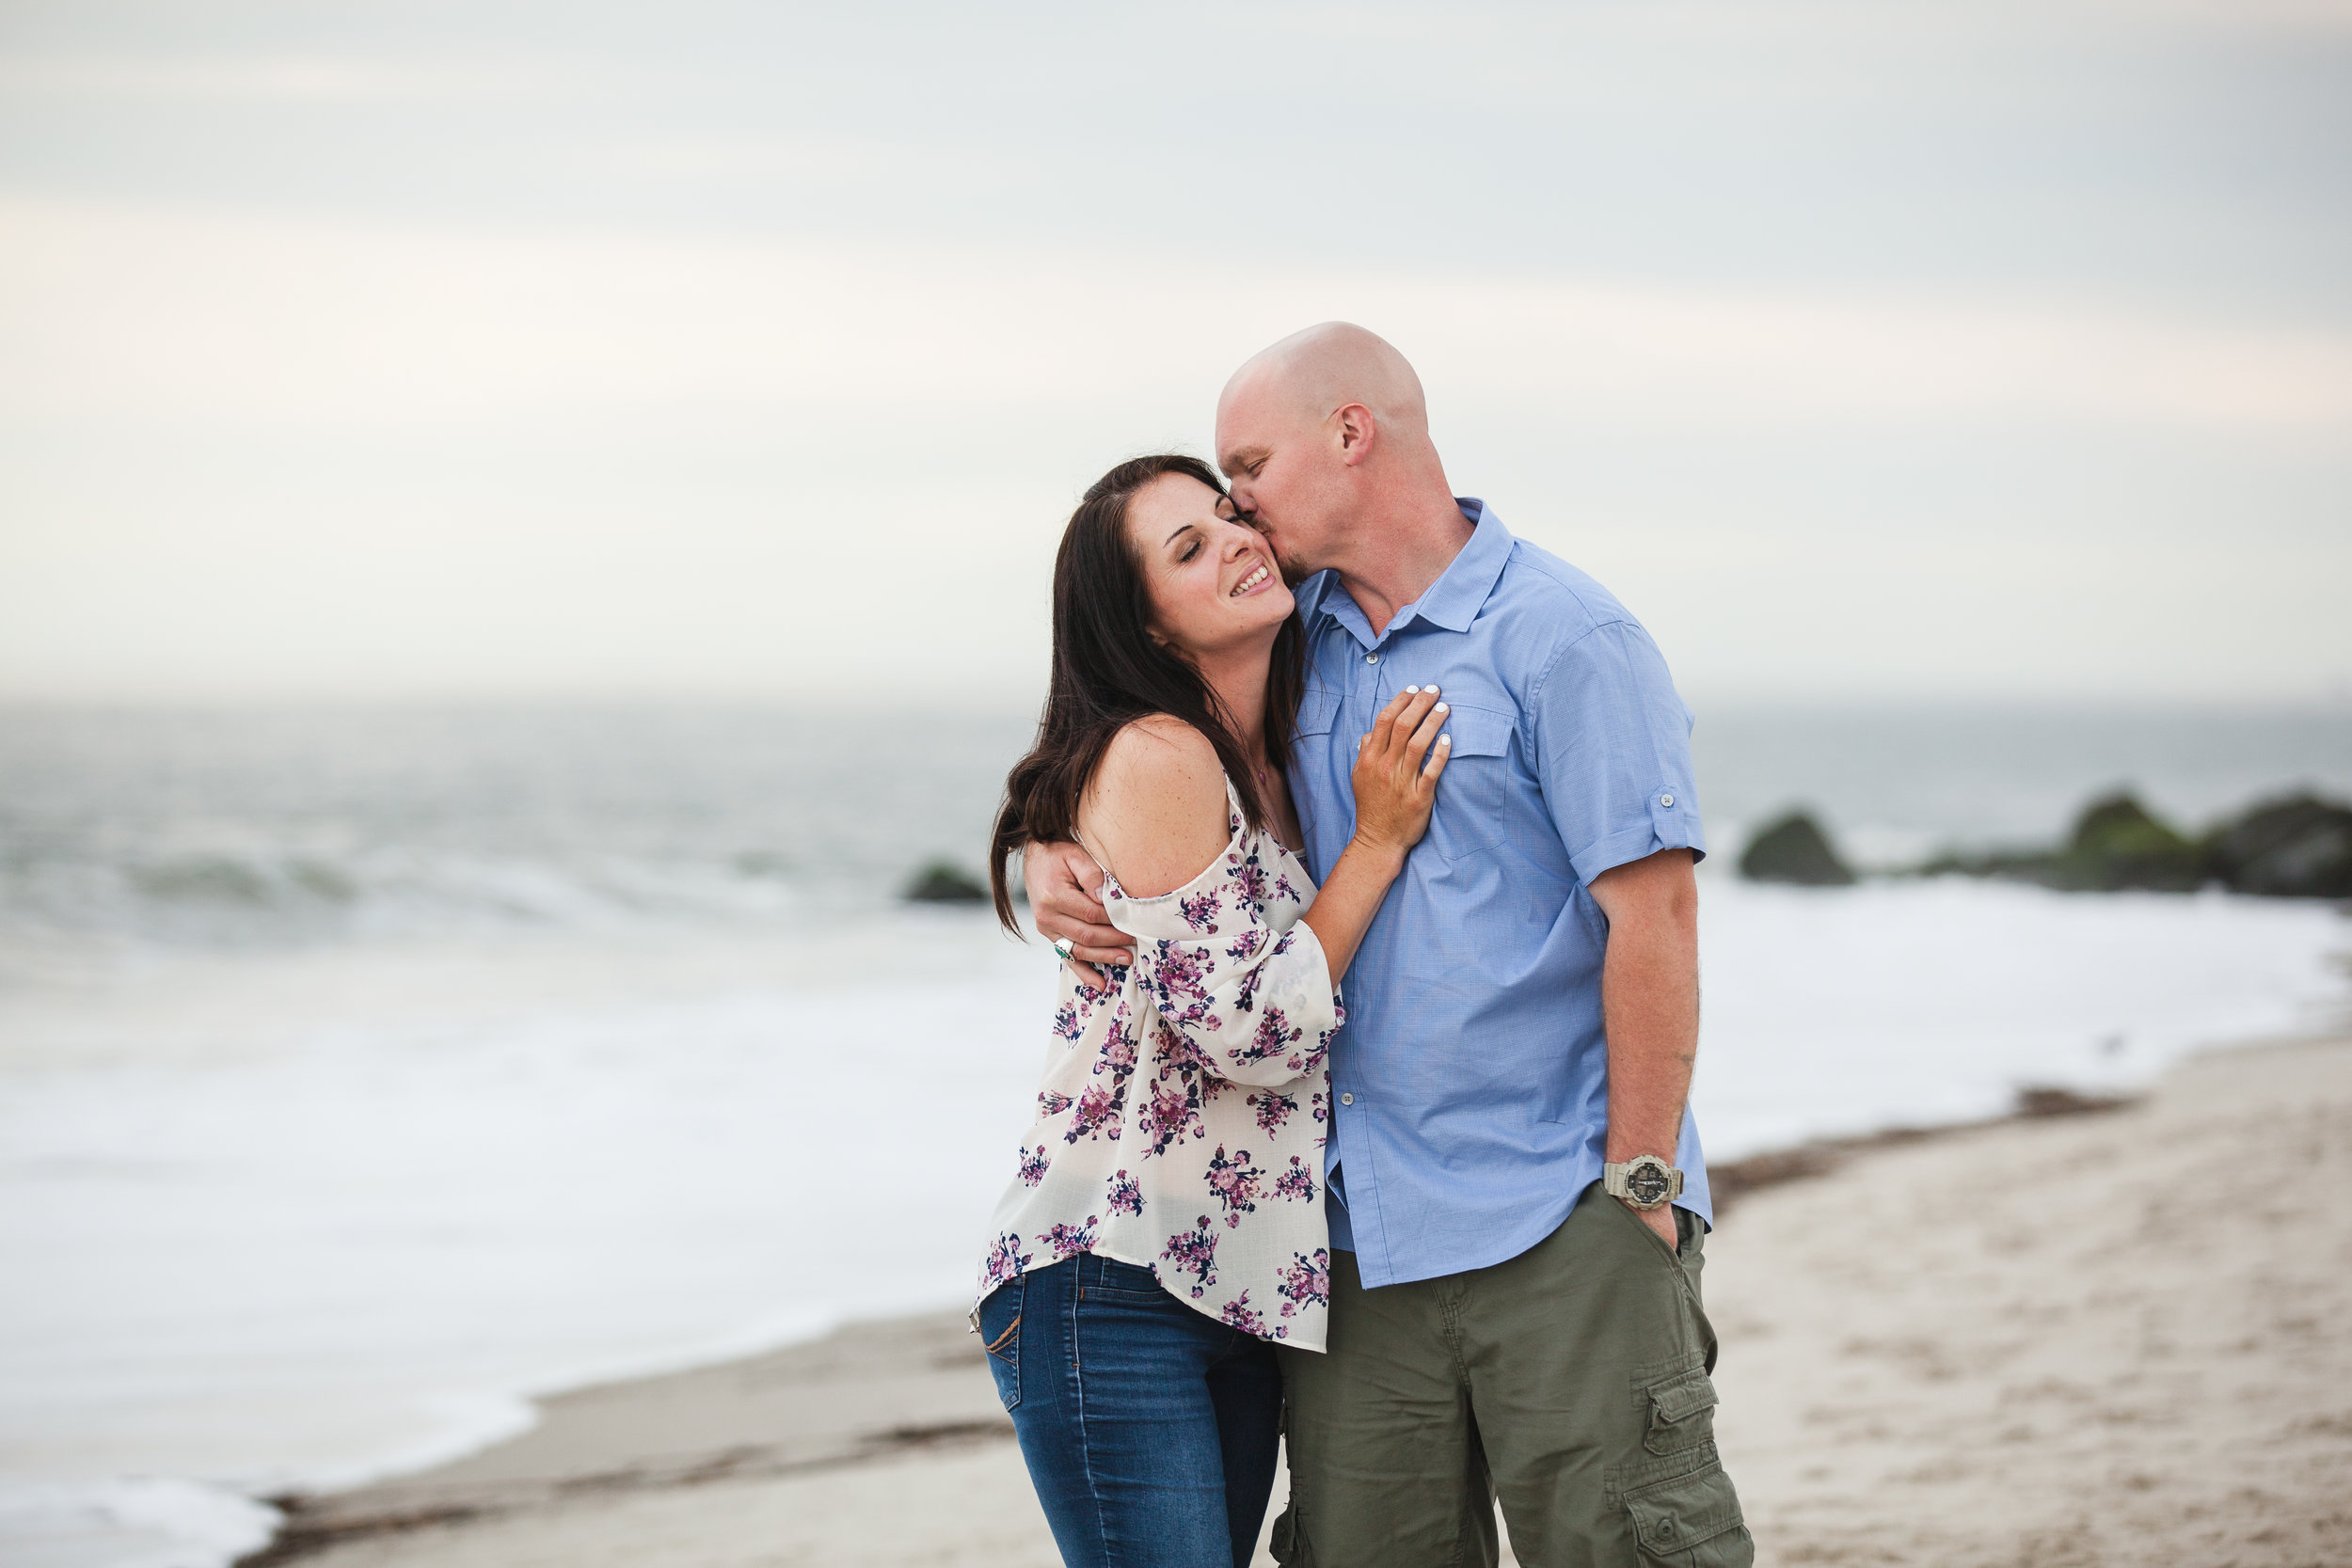 StaceyandJohnEngagementPrints-13.jpg